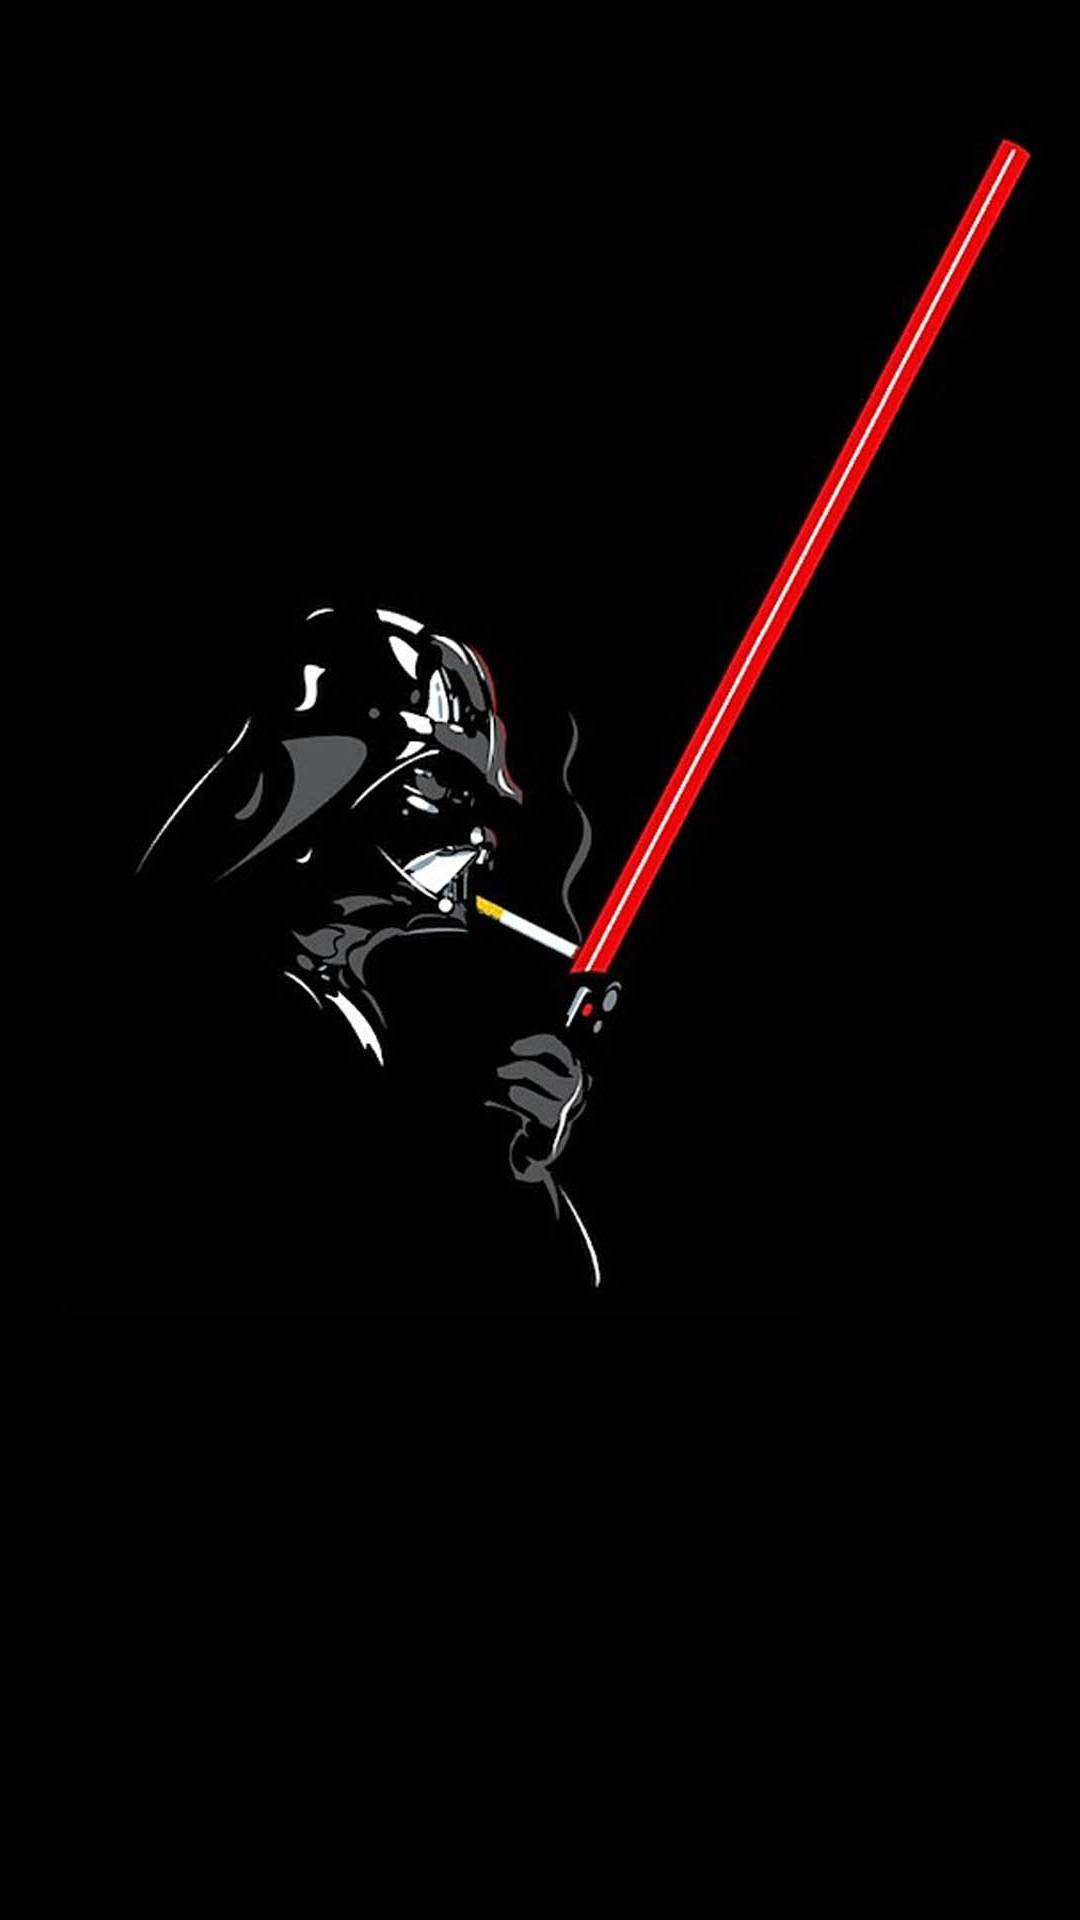 51 star war wallpapers for iphone 6s - apple lives